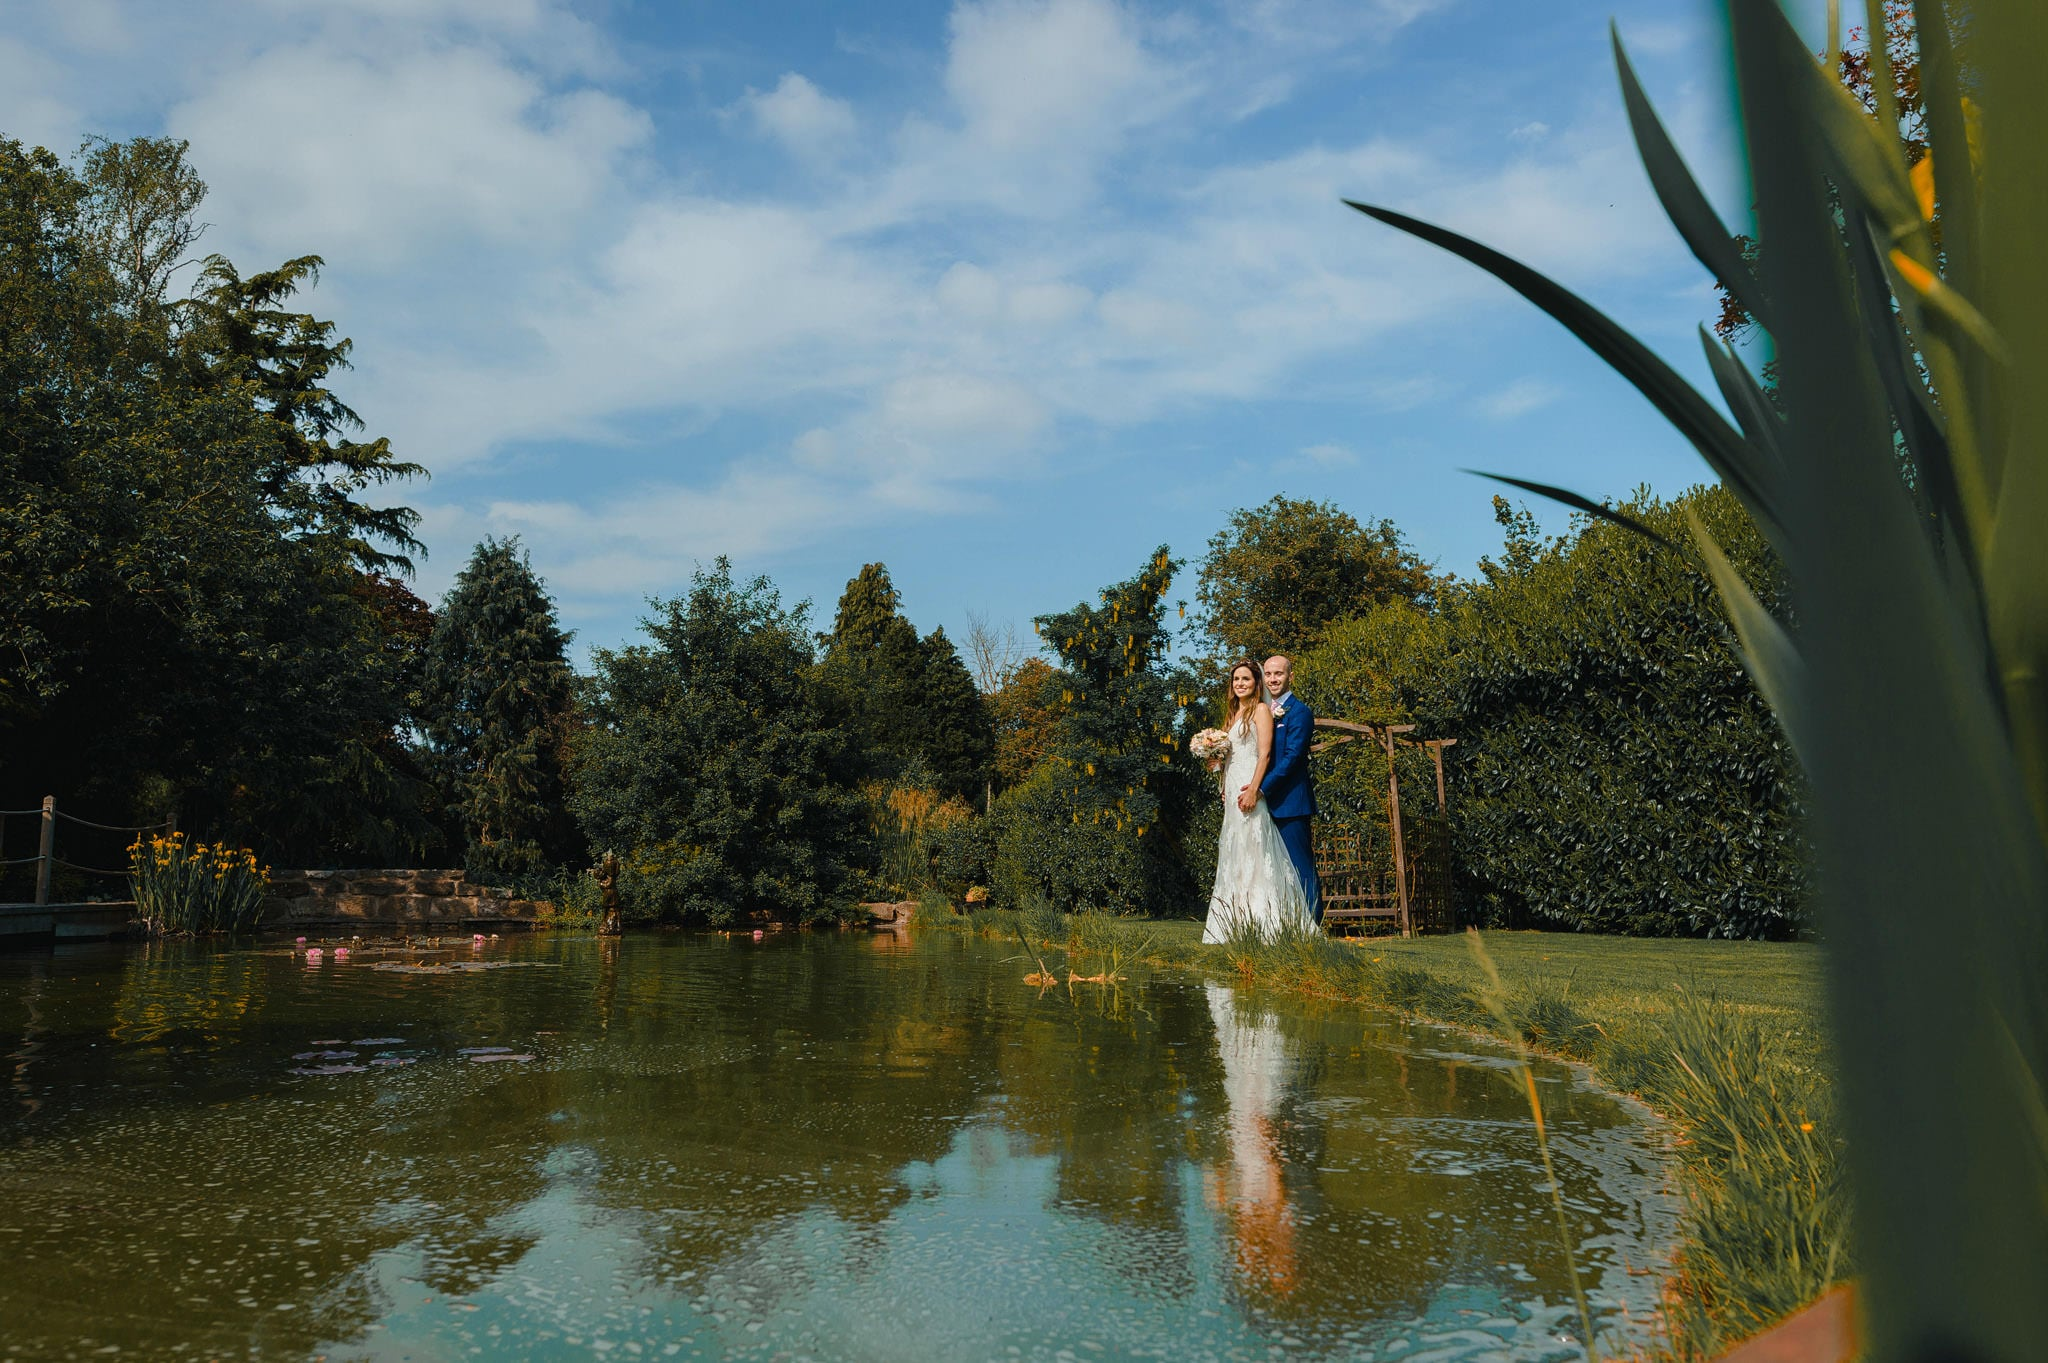 Wedding at Redhouse Barn in Stoke Prior, Worcestershire 106